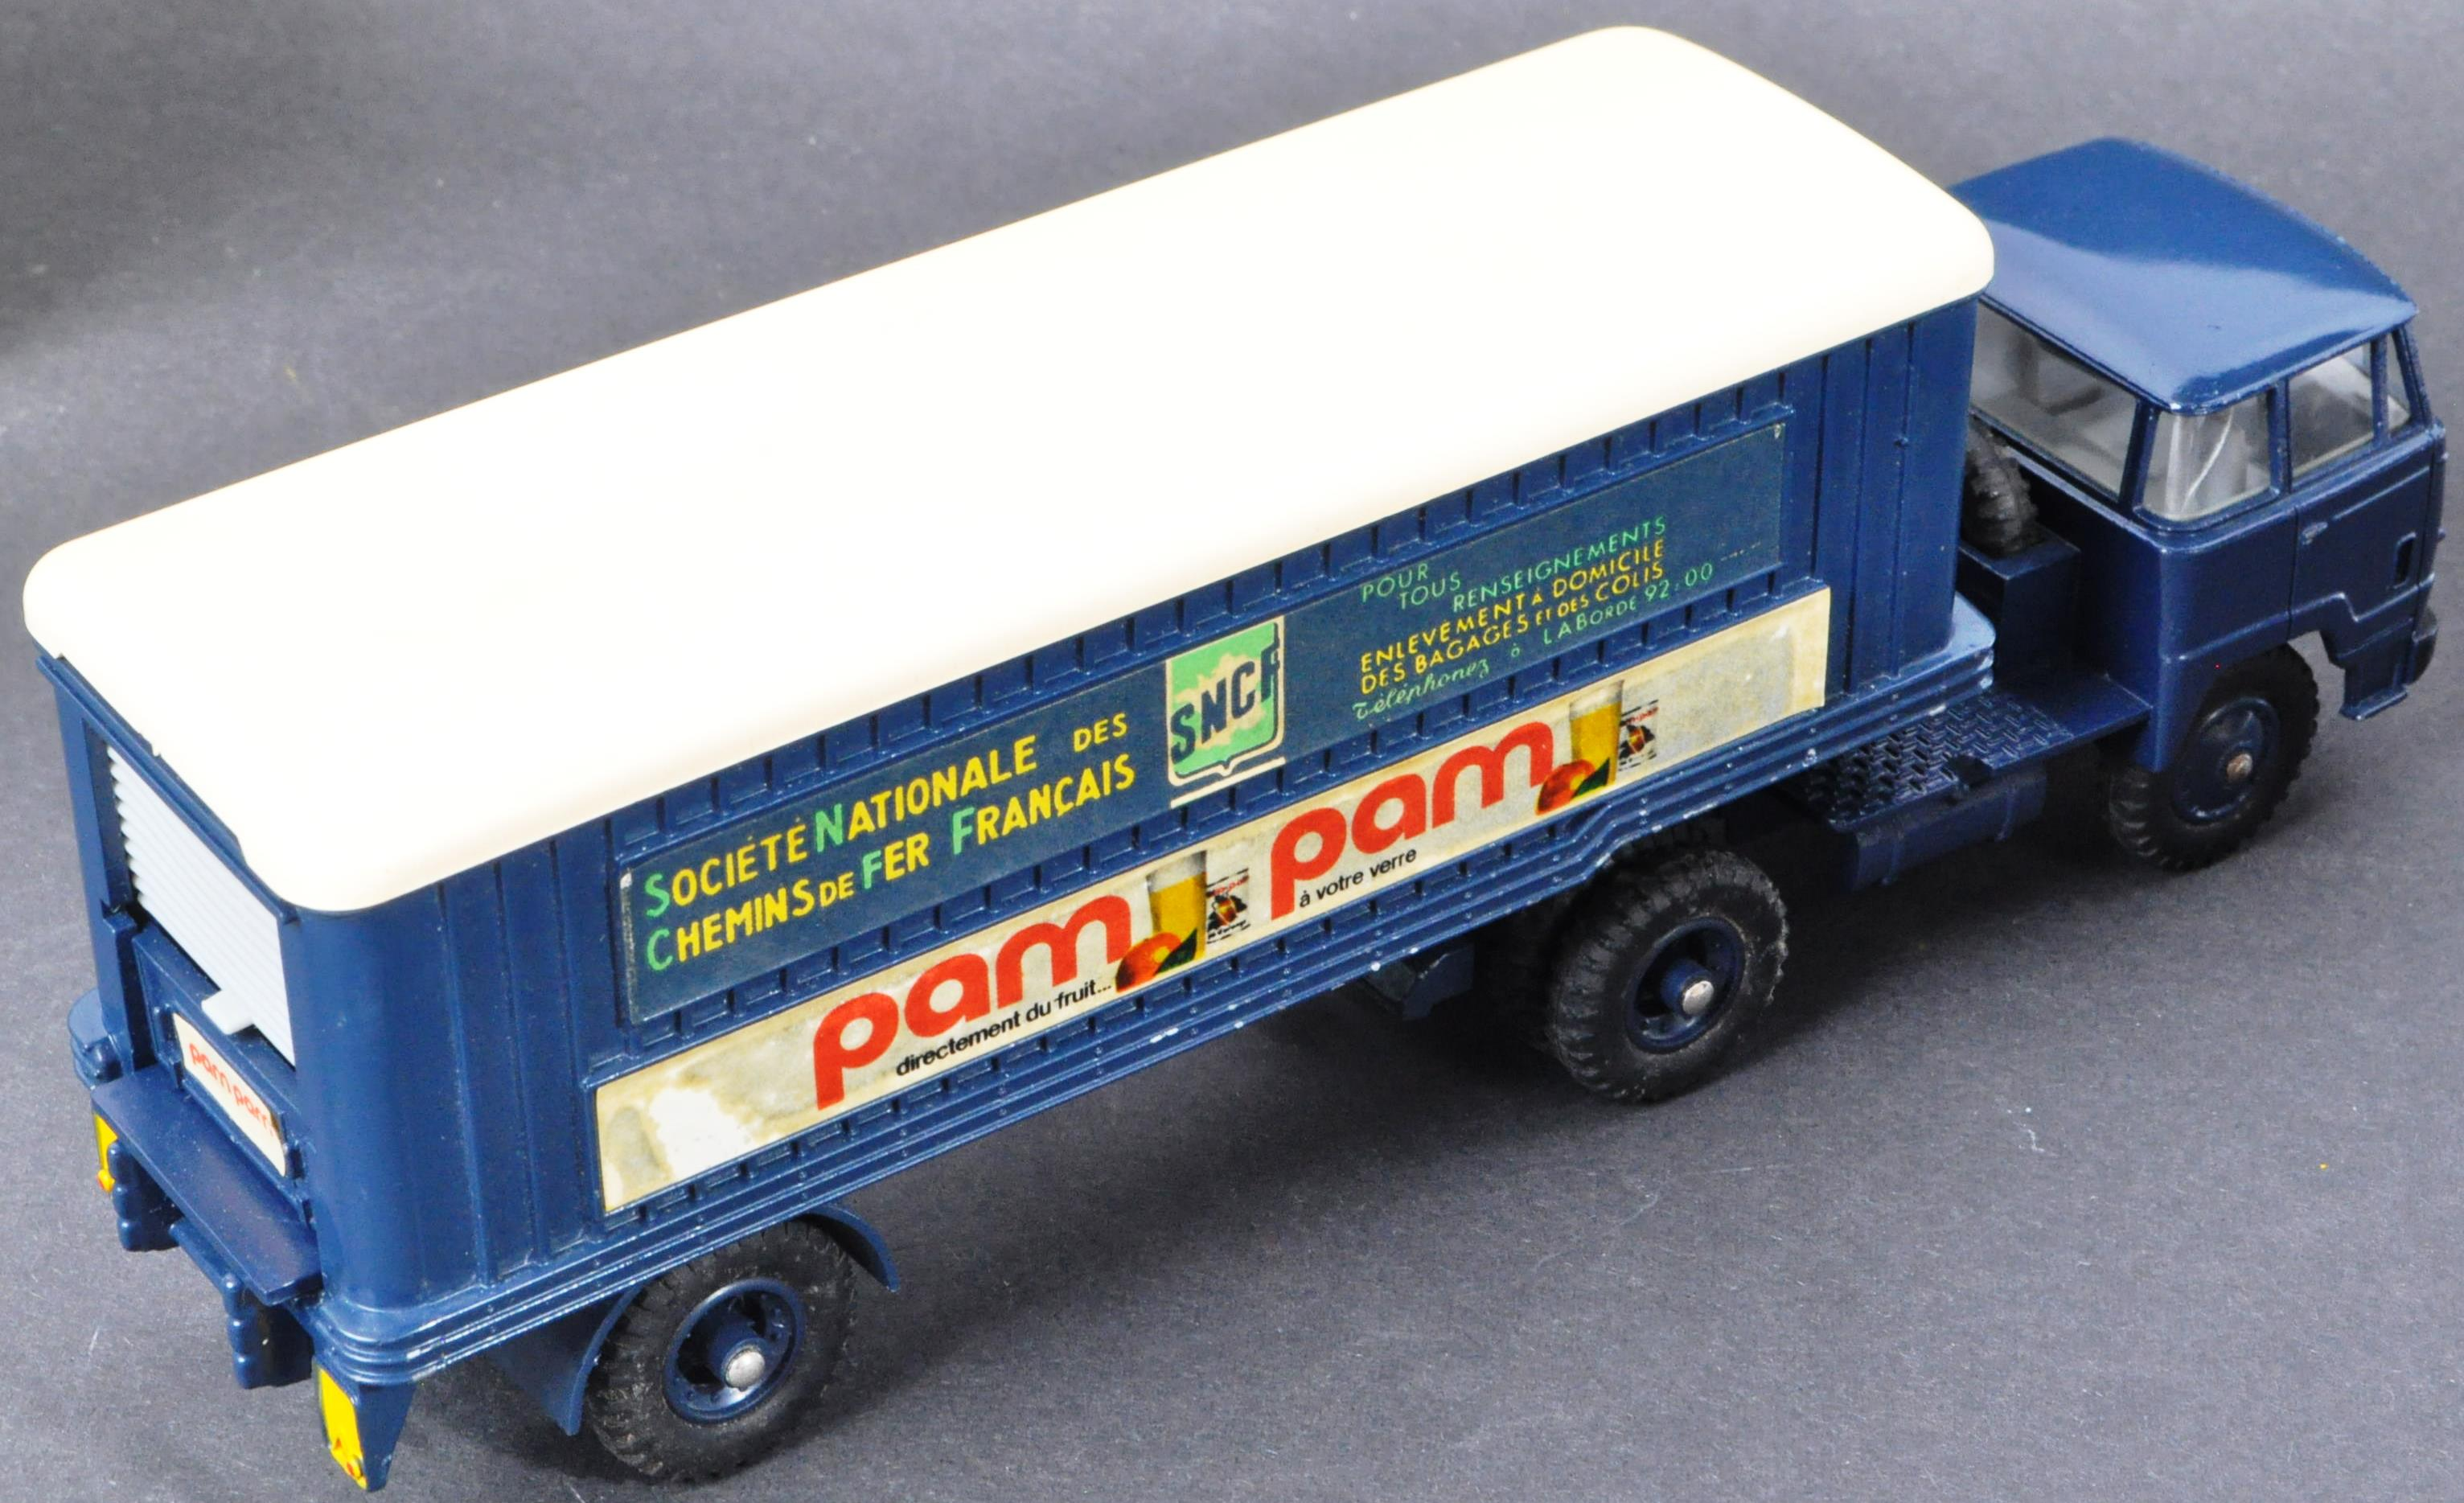 FRENCH DINKY TOYS - ORIGINAL BOXED VINTAGE DIECAST MODEL - Image 5 of 6